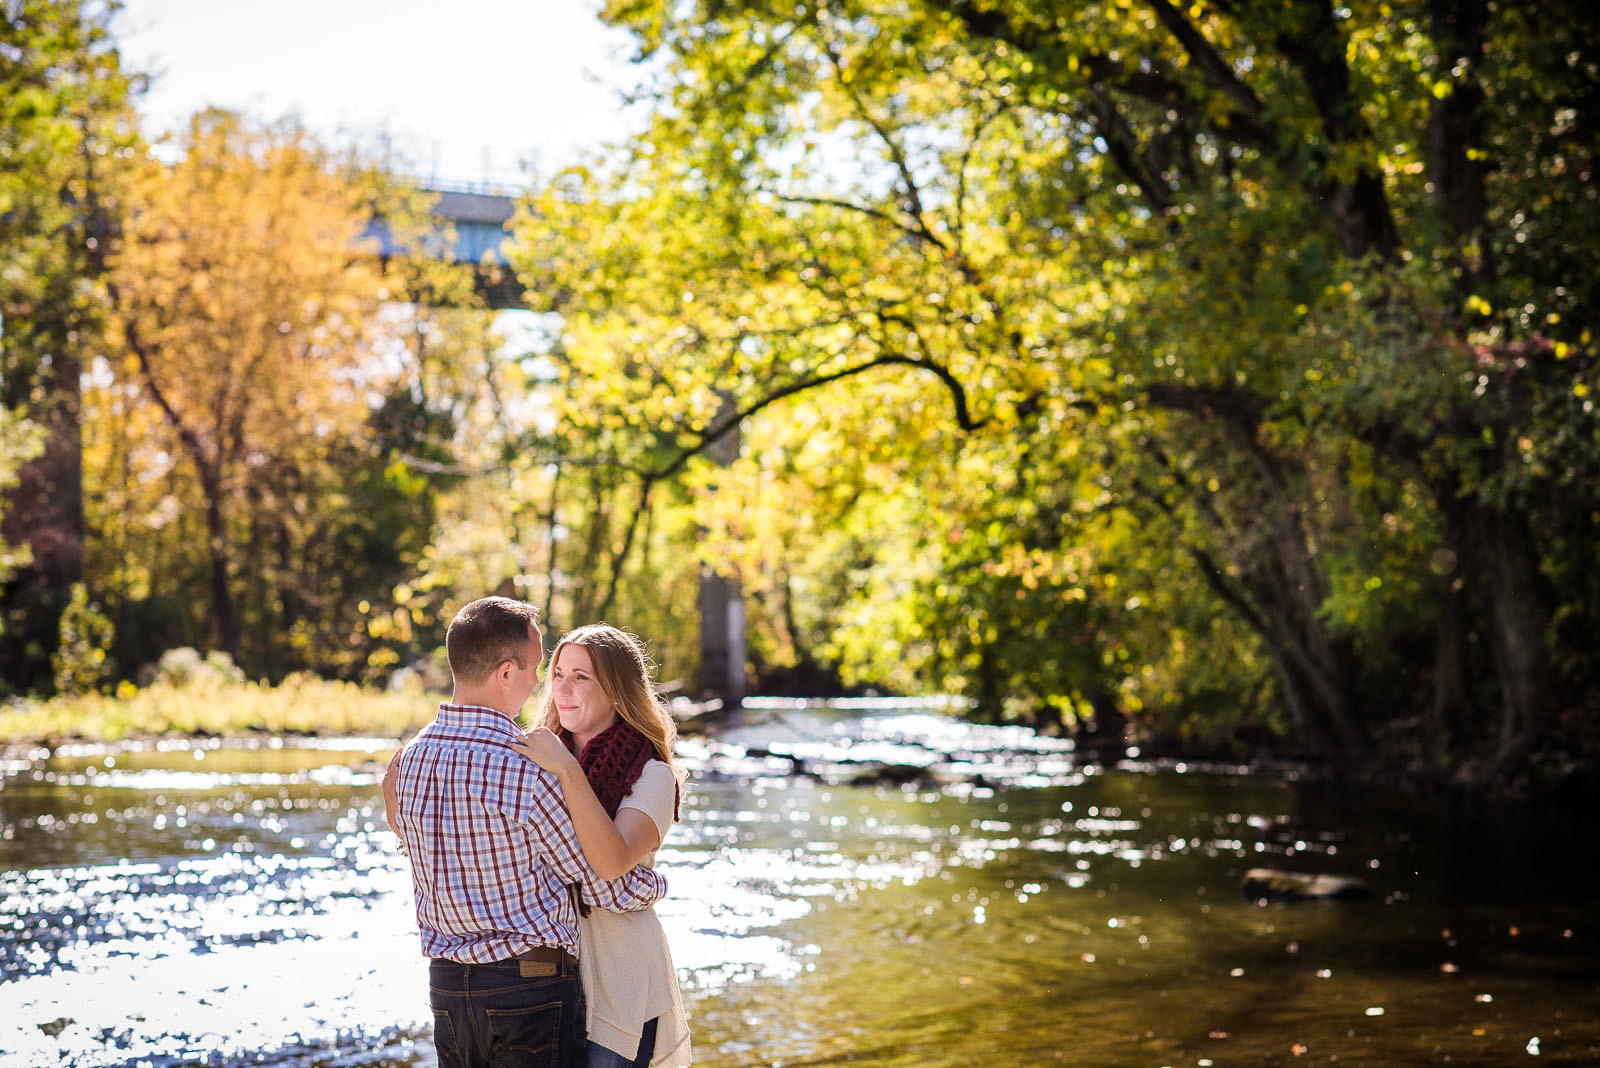 Eric_and_Christy_Photography_Blog_Megan_Nate_Engagement-13